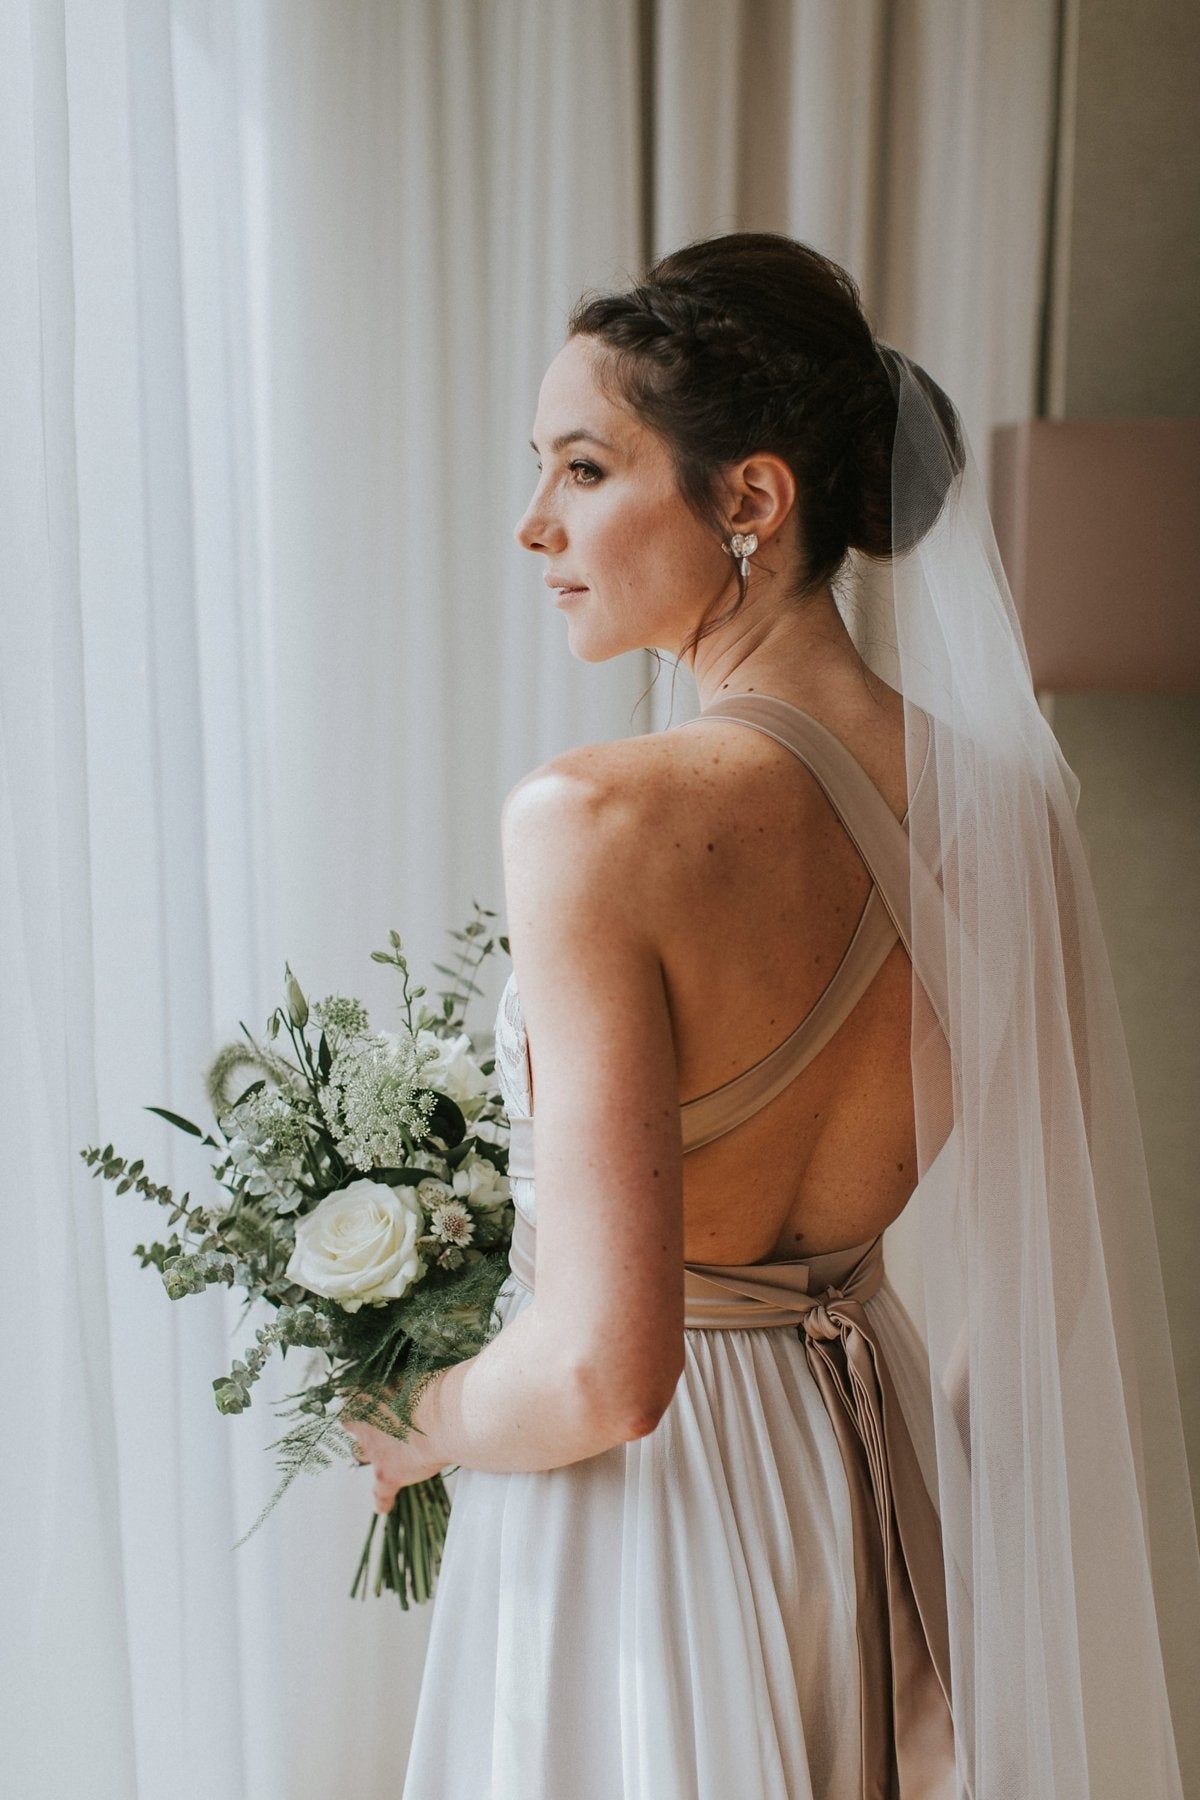 silver earrings and barely there veil